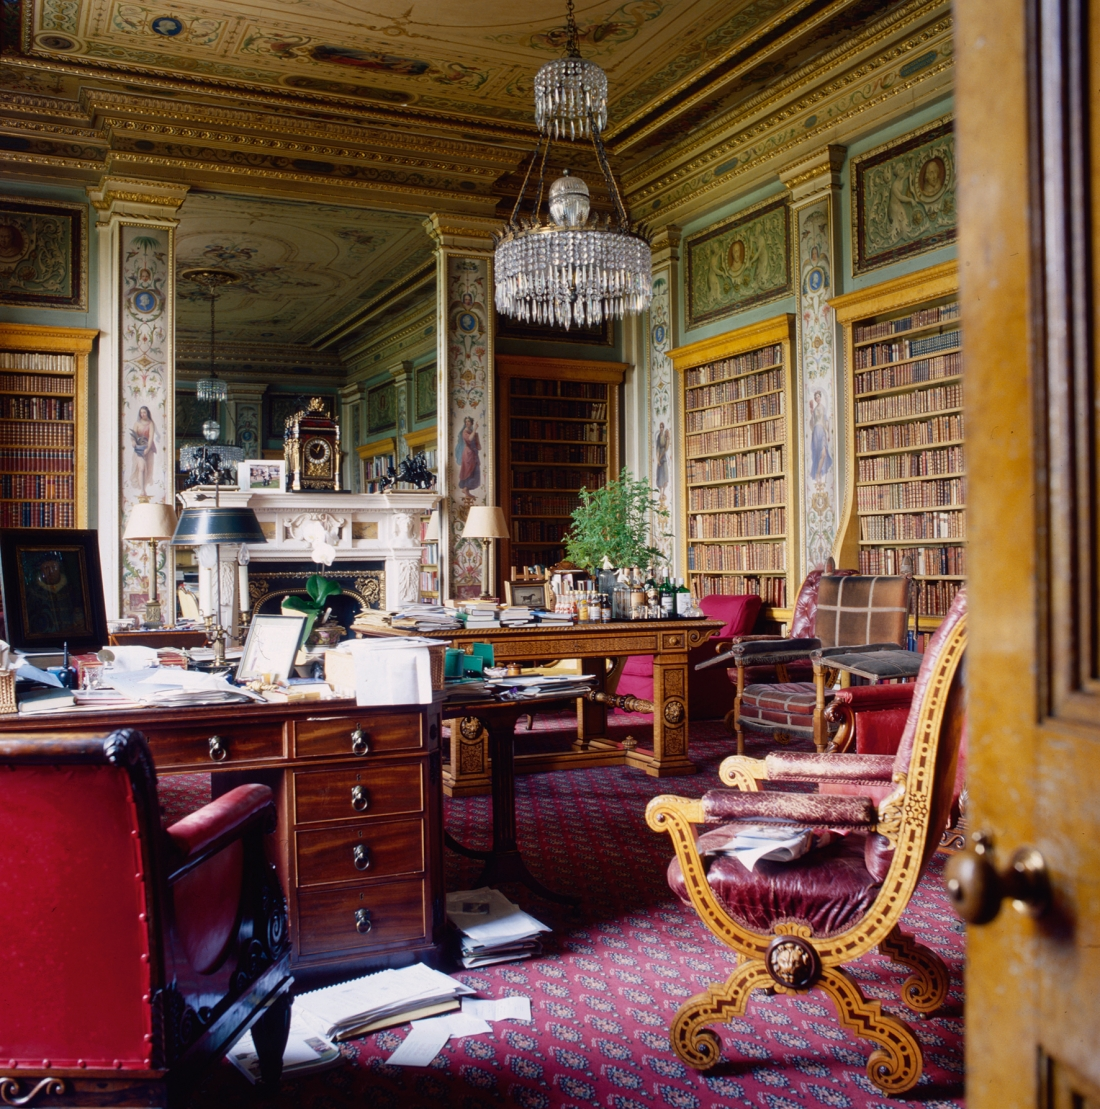 Chatsworth House. The Lower Library, as it was for the 11th Duke of Devonshire whose daily use of this room, and his preference, shows a 'désordre anglais'. Courtesy © Derry Moore | Prestel